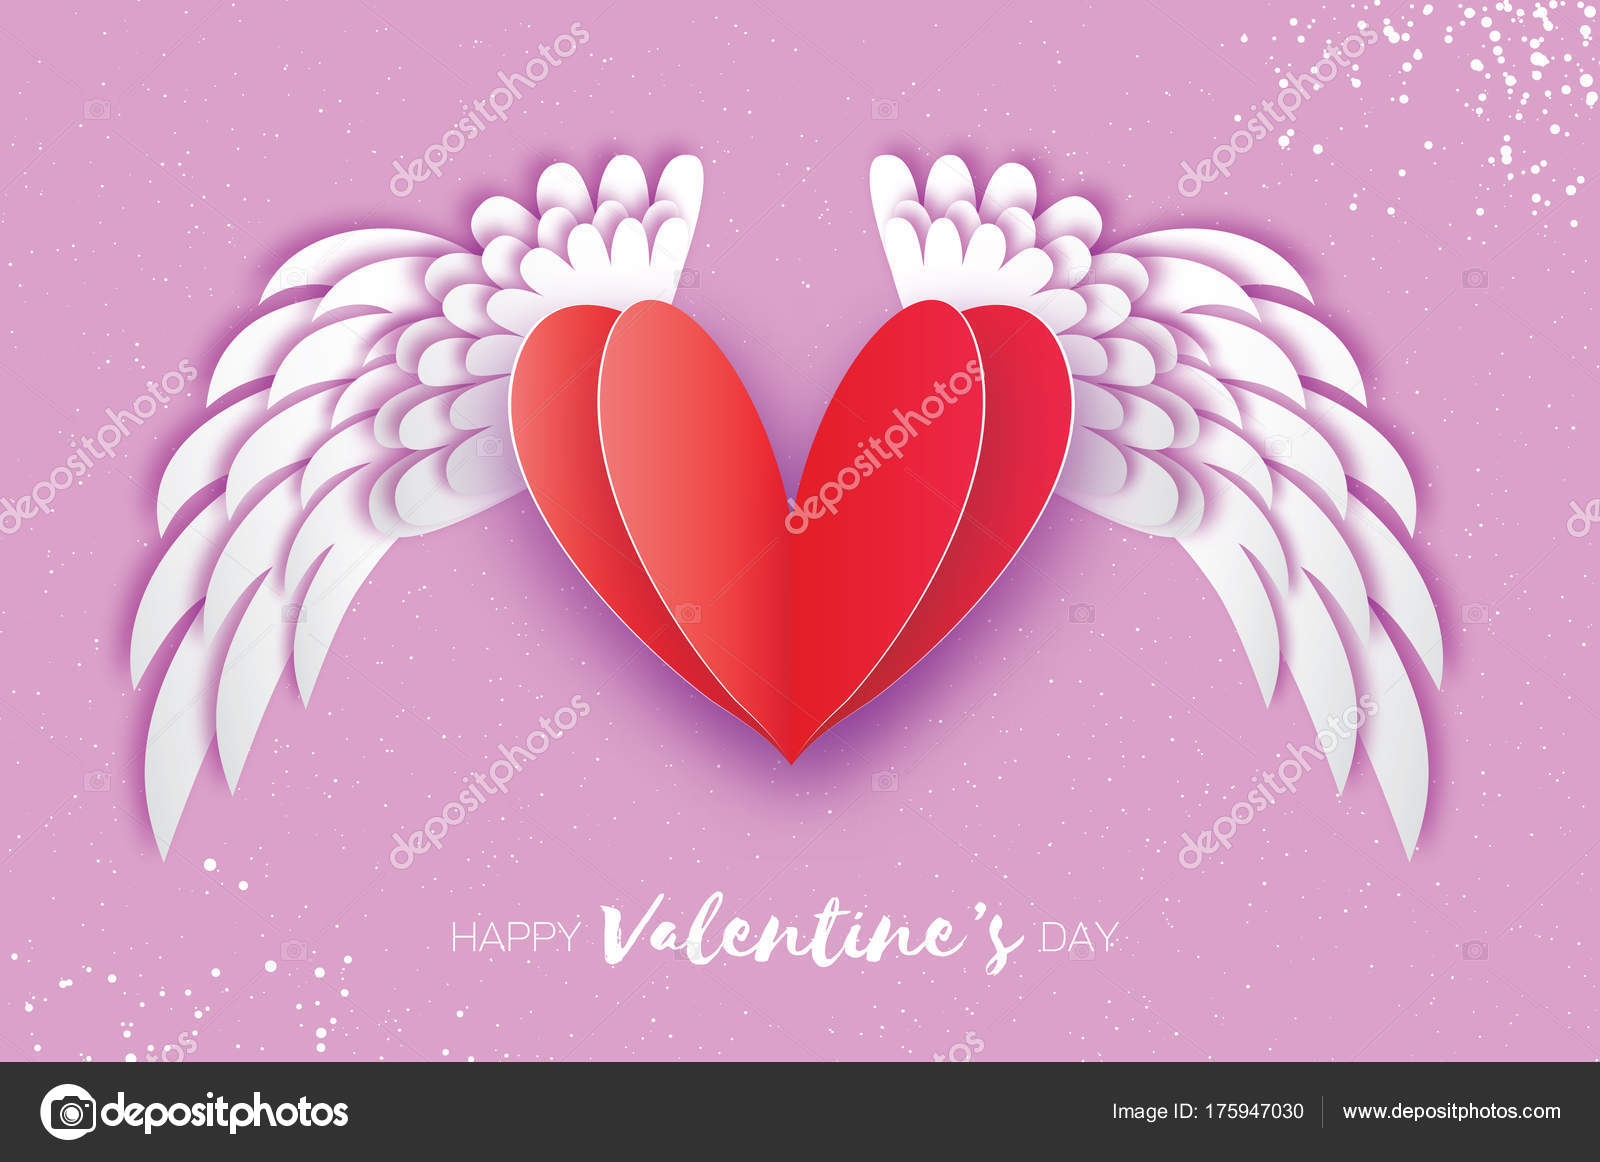 Happy Valentines Day Greetings Card Origami Angel Wings And Romantic Red Heart Love